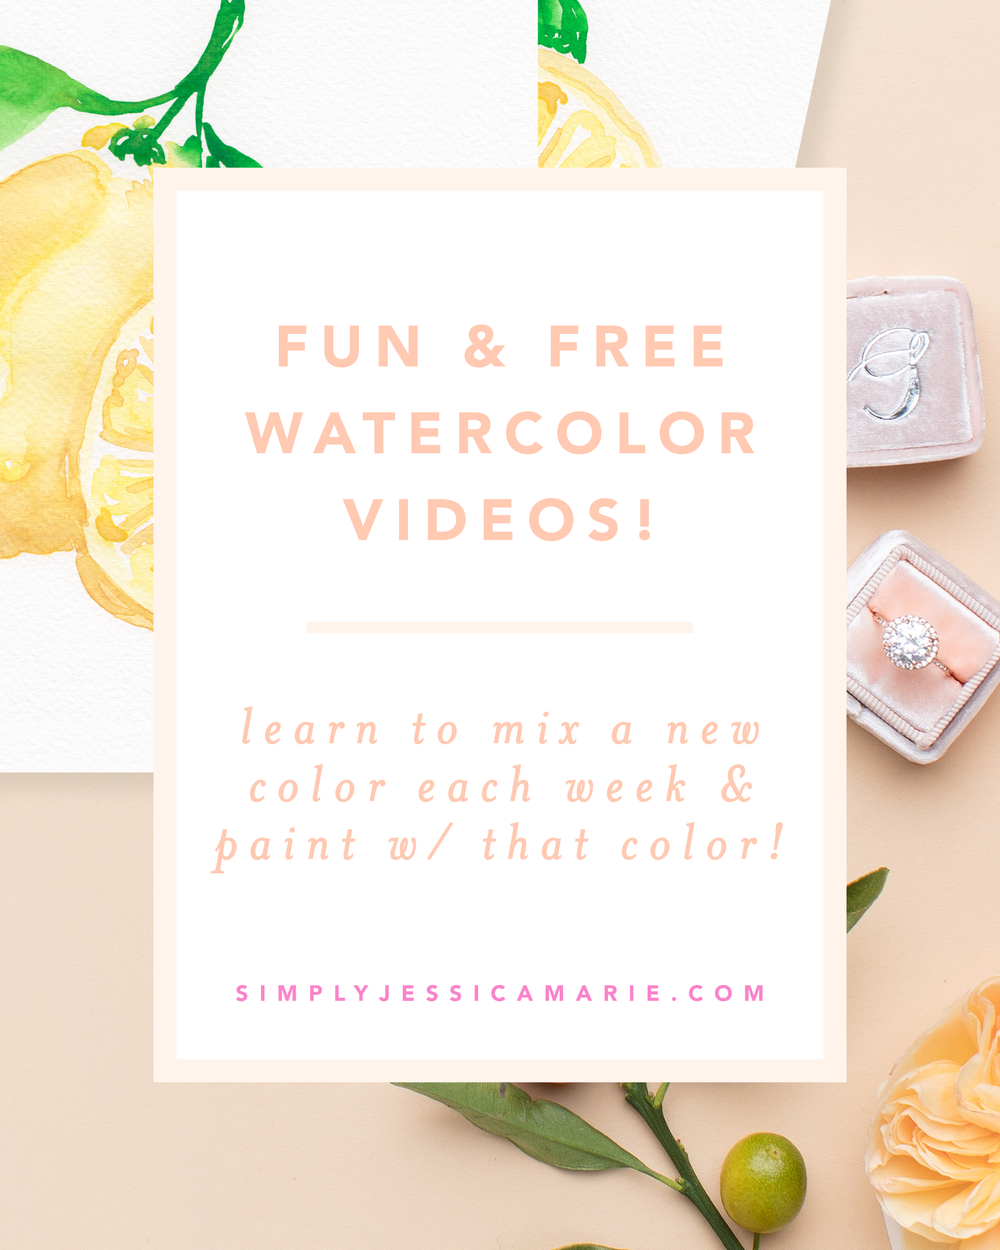 How to paint watercolor lemons! Fun and free watercolor videos by Simply Jessica Marie! Learn to mix new colors each week and paint with that color! | SC Stockshop